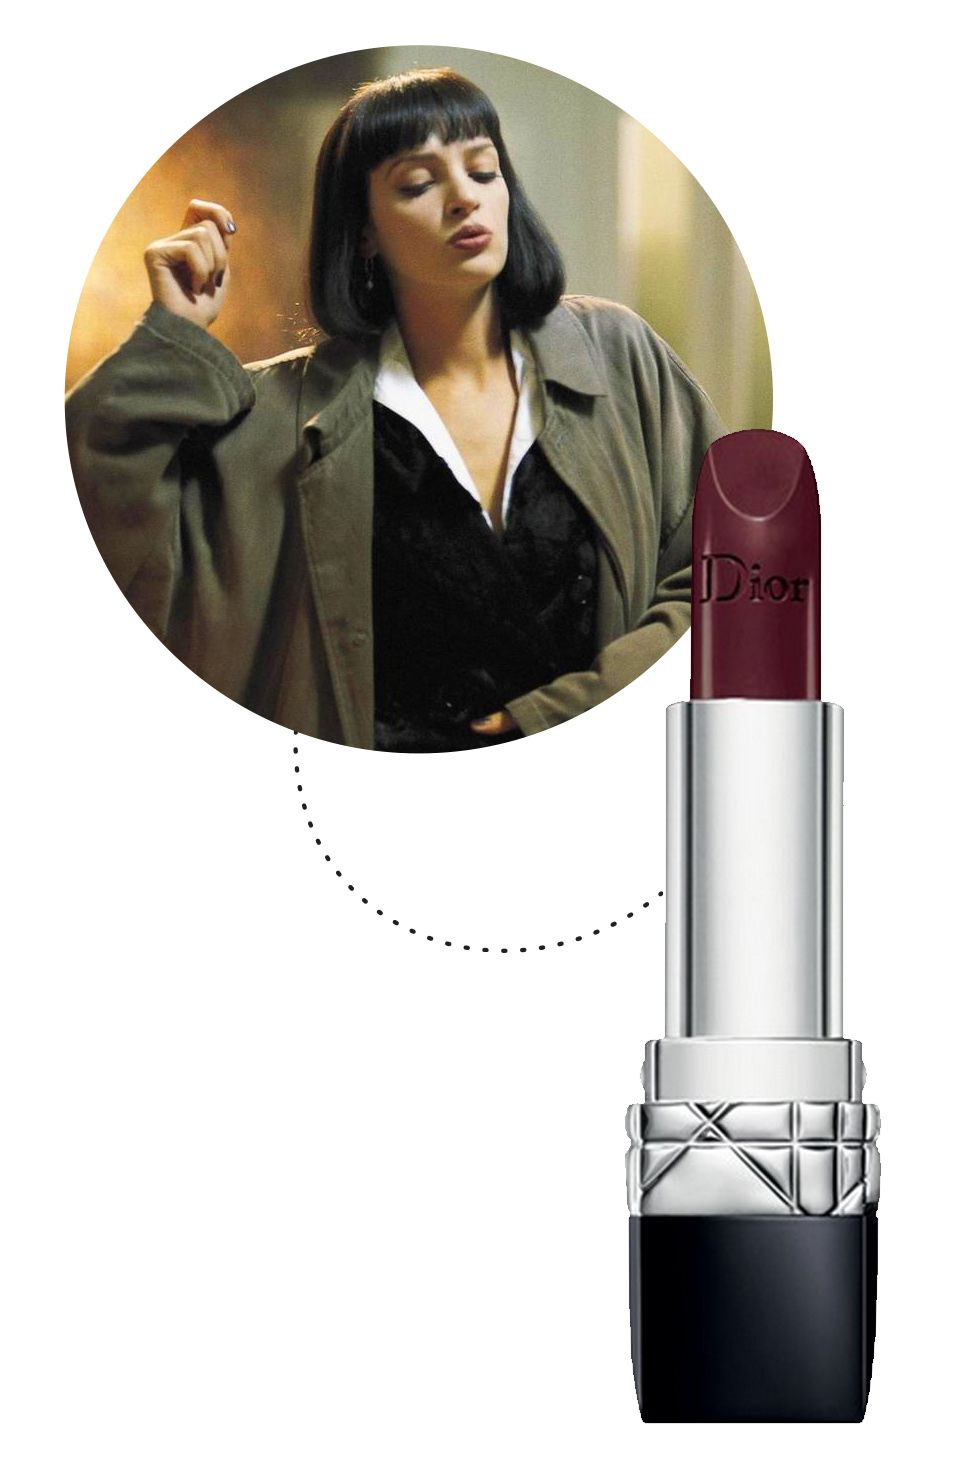 """<p>Mrs. Wallace's lip look in her infamous pre-overdose dance scene is what muddy plum dreams are made of. For a similar effect, try an opaque Bordeaux brown, but maybe say """"no"""" to drugs.</p><p><a href=""""http://shop.nordstrom.com/s/dior-rouge-dior-lipstick/3575947""""></a><em><a href=""""http://shop.nordstrom.com/s/dior-rouge-dior-lipstick/3575947"""">Dior Rouge Dior Lipstick in Unique.</a></em></p>"""